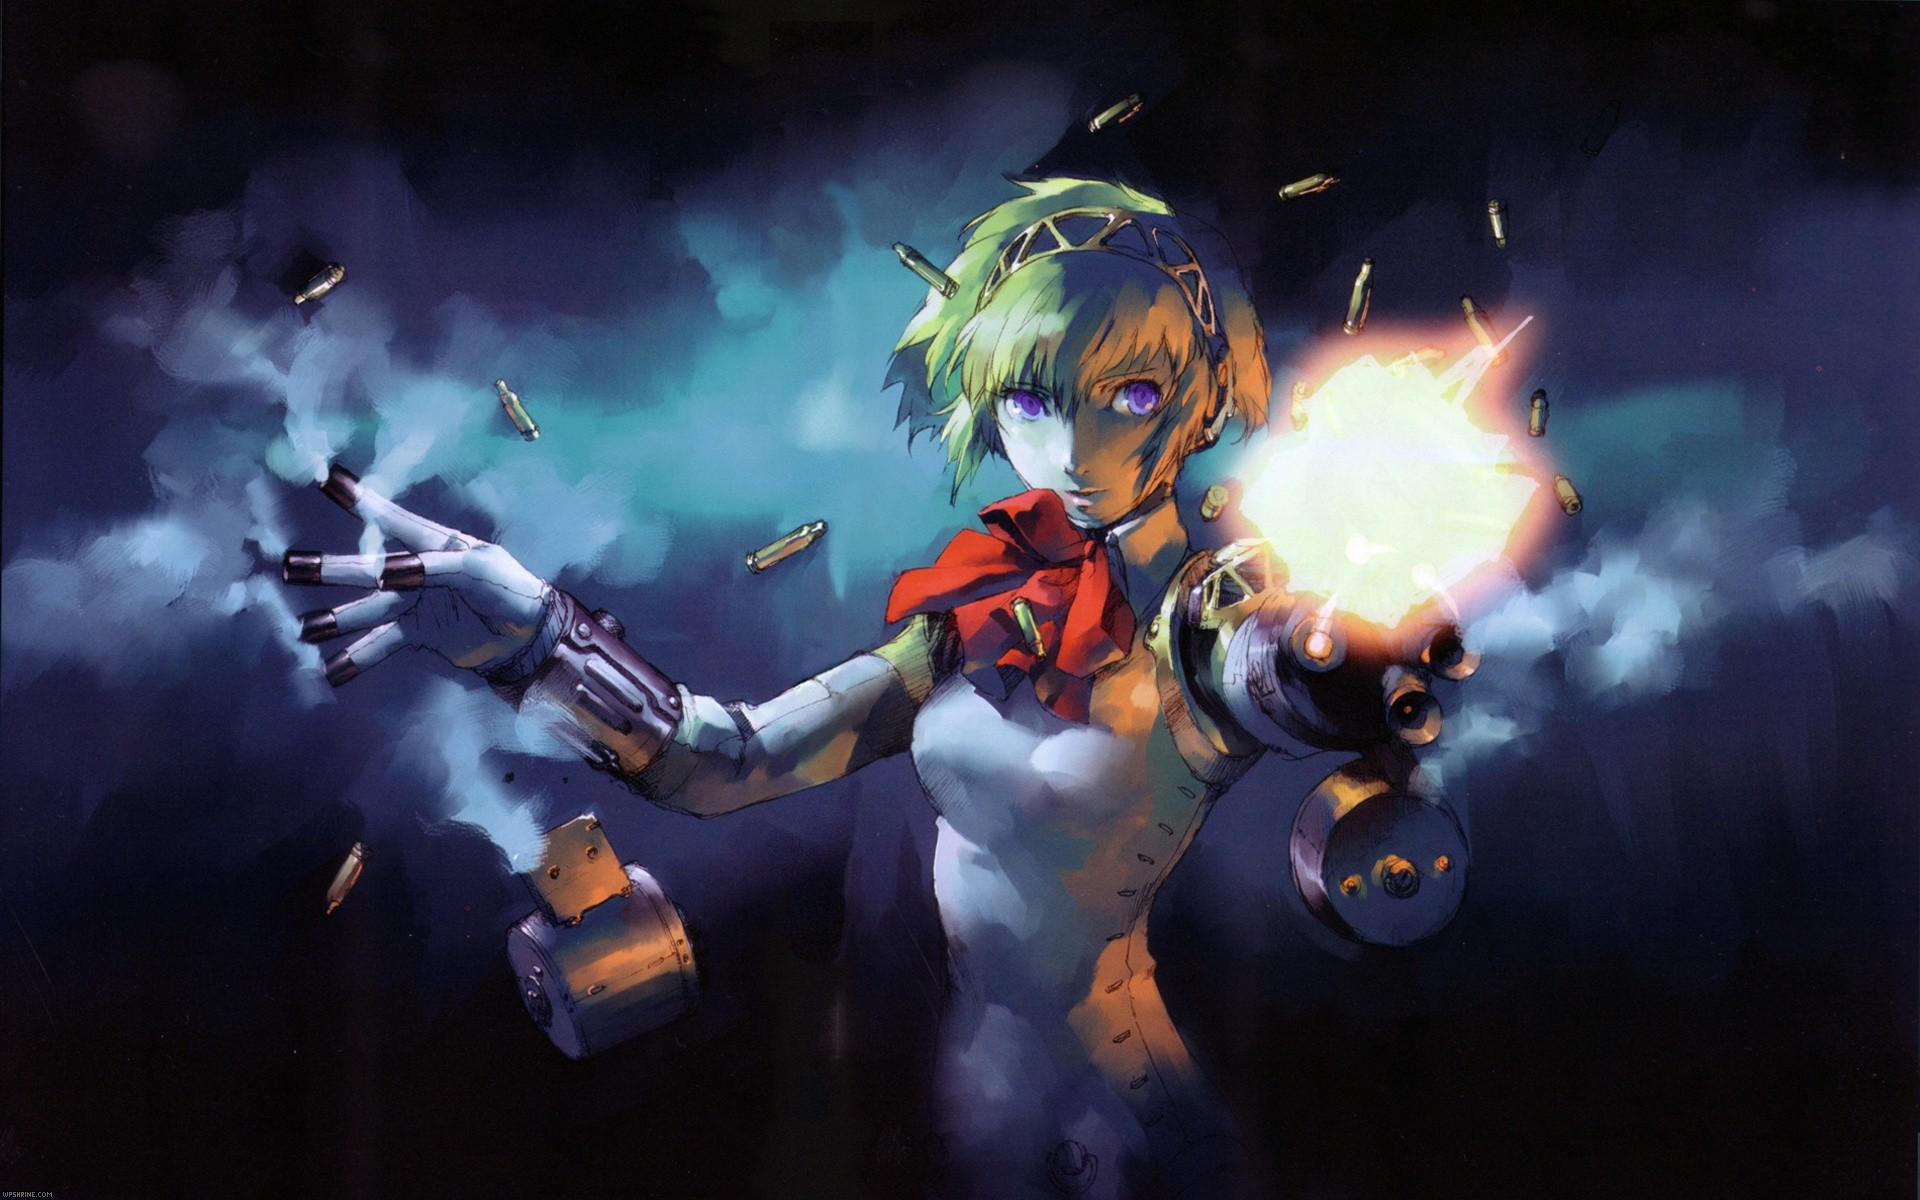 Aigis/Aegis – Click image for bigger size and better quality